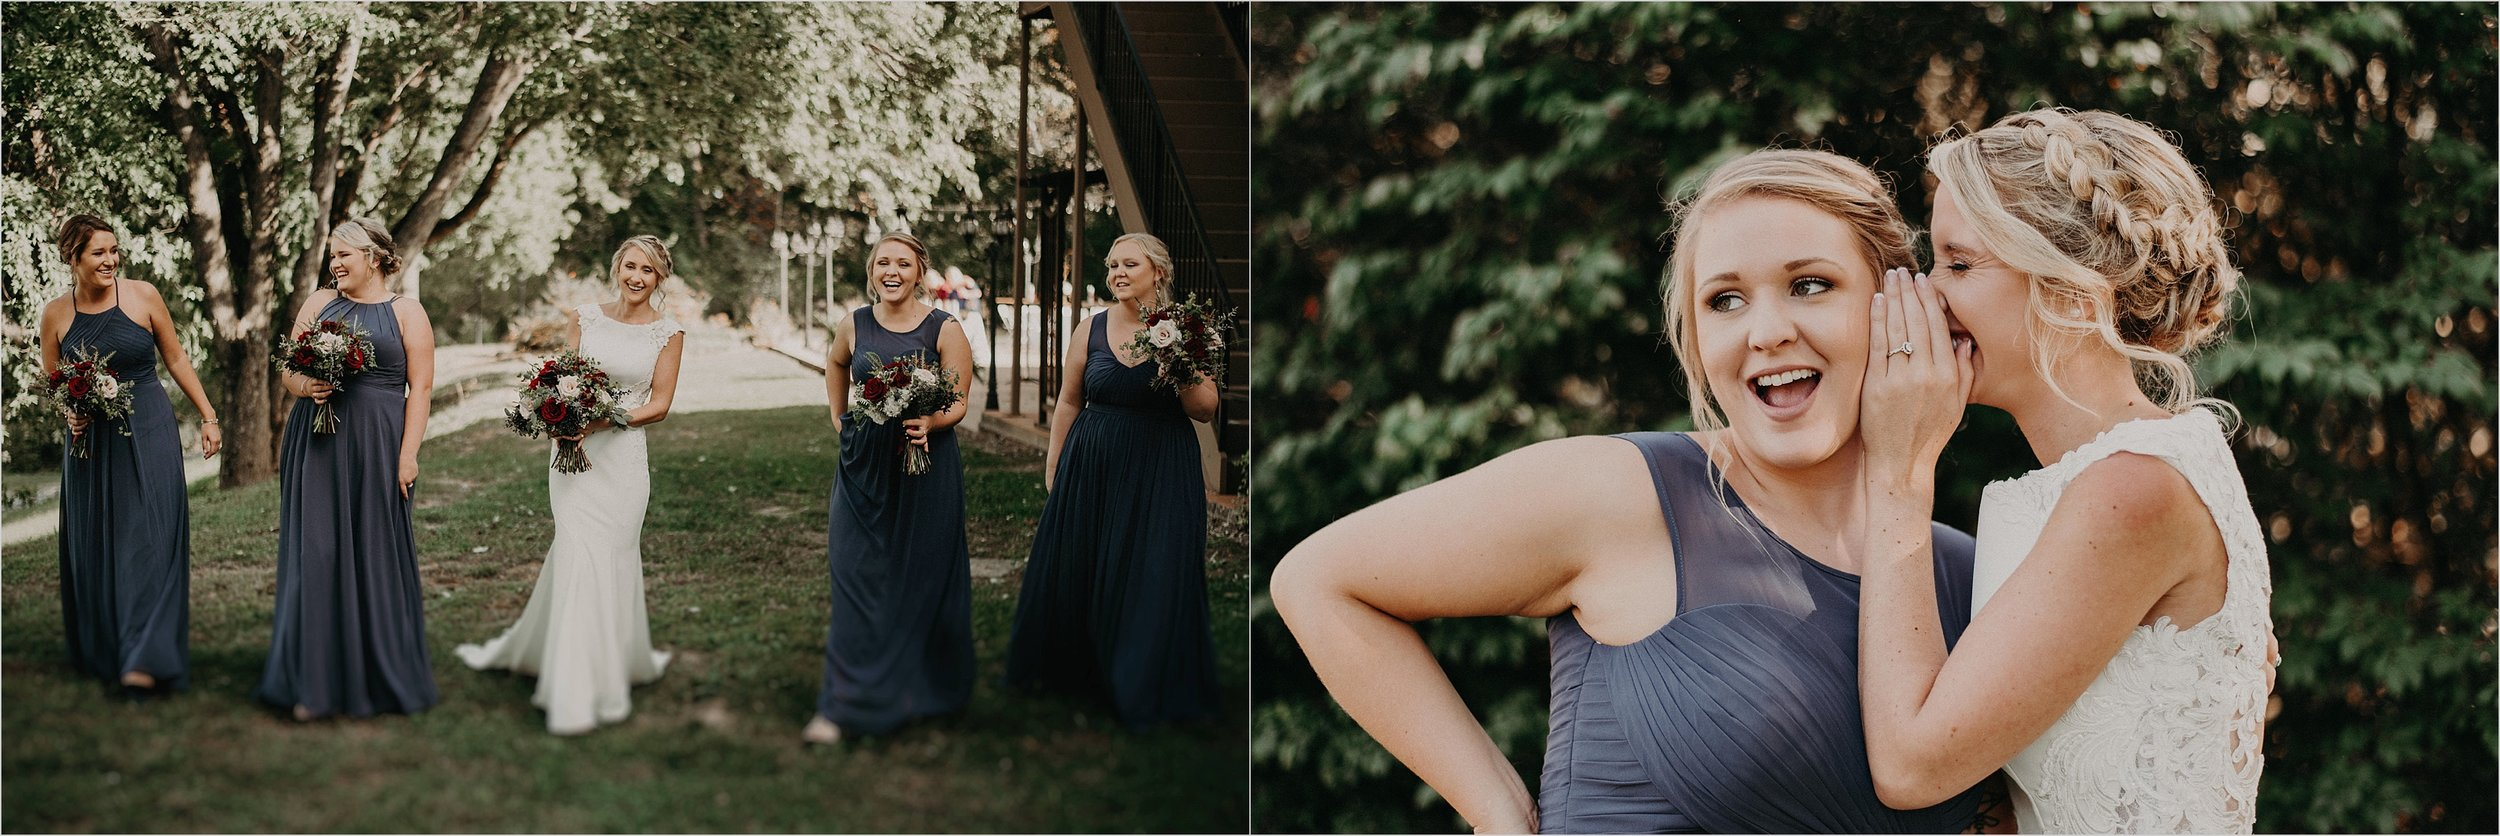 Bride shares a secret with her maid of honor